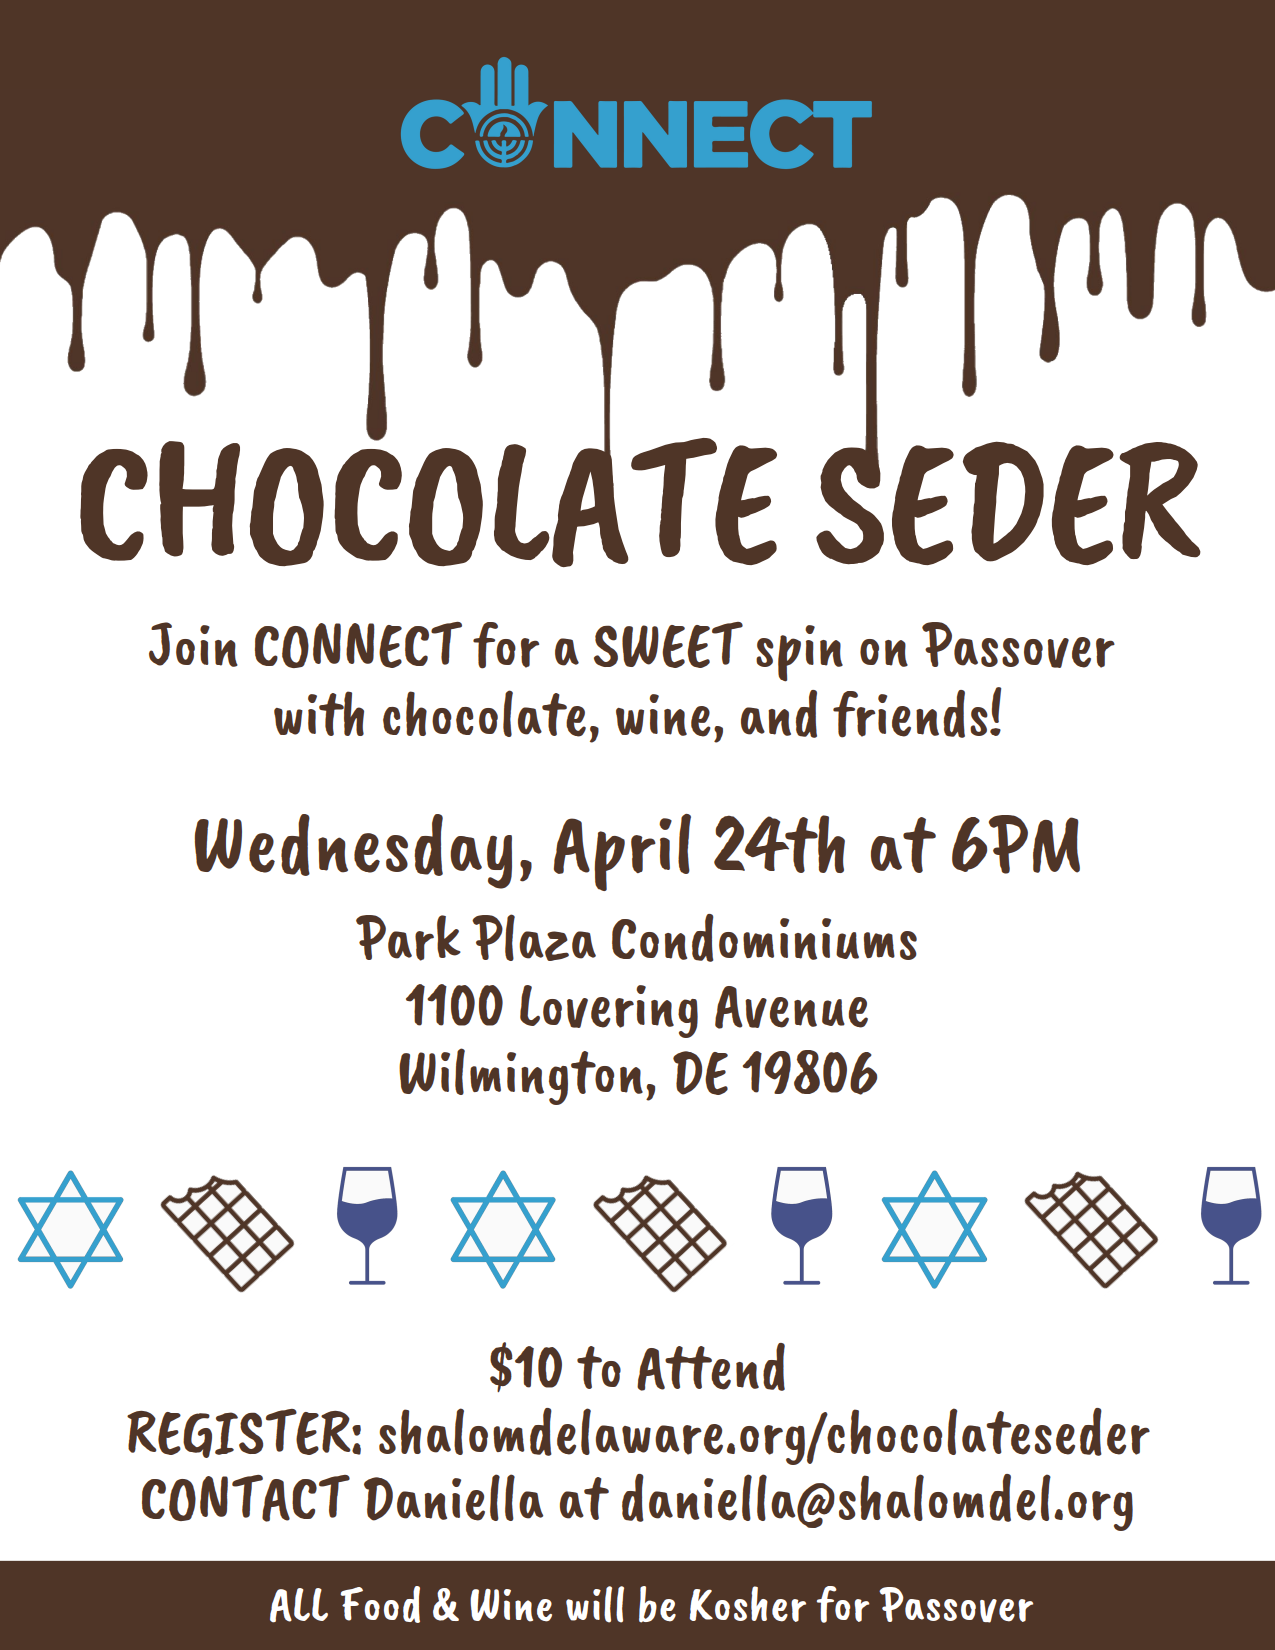 CONNECT Chocolate Seder